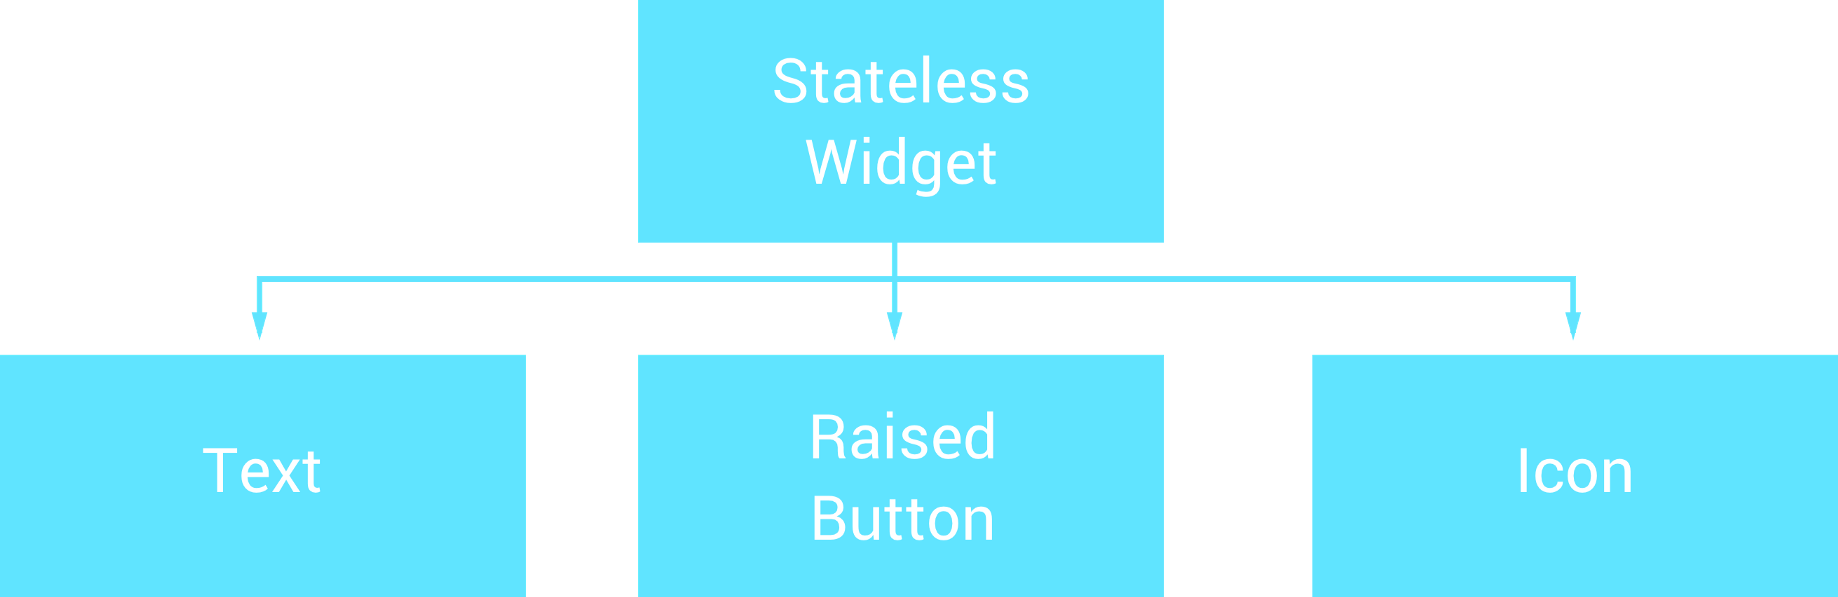 Stateful or Stateless widgets? - FlutterDoc